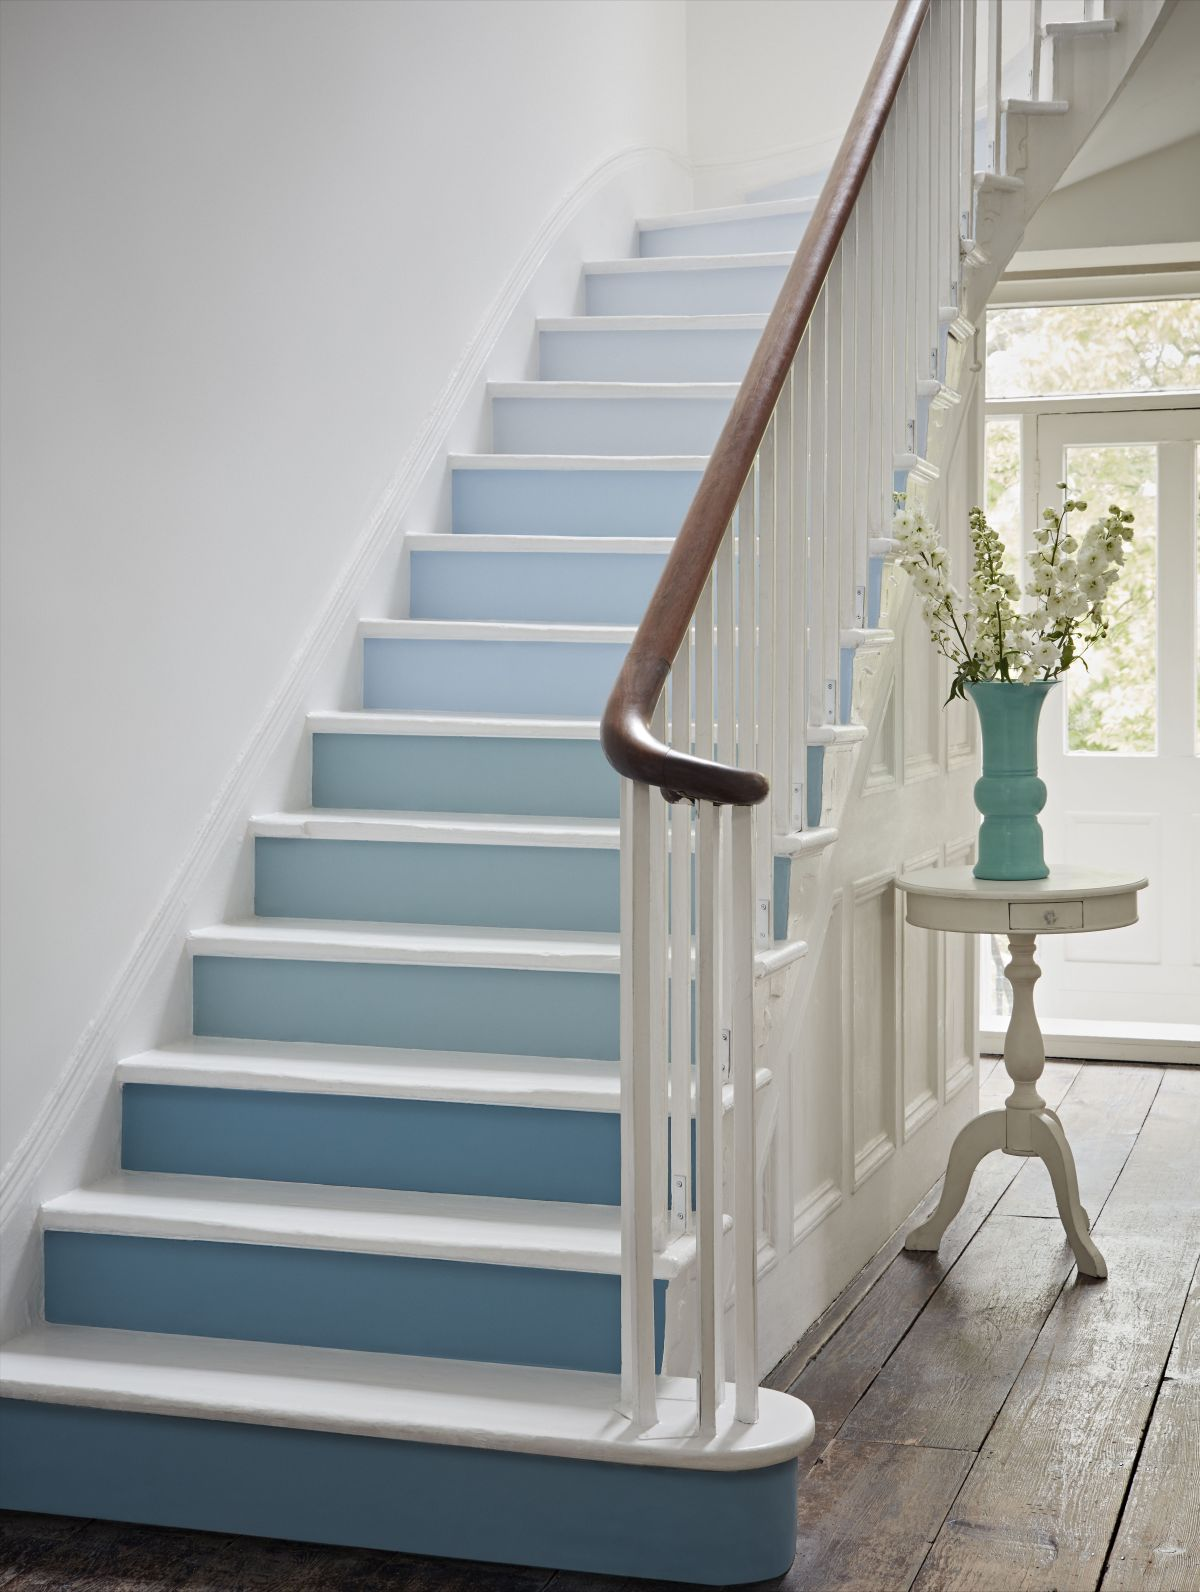 Painting Stairs 10 Ideas And Tips On How To Update Your Stairs Quickly Real Homes